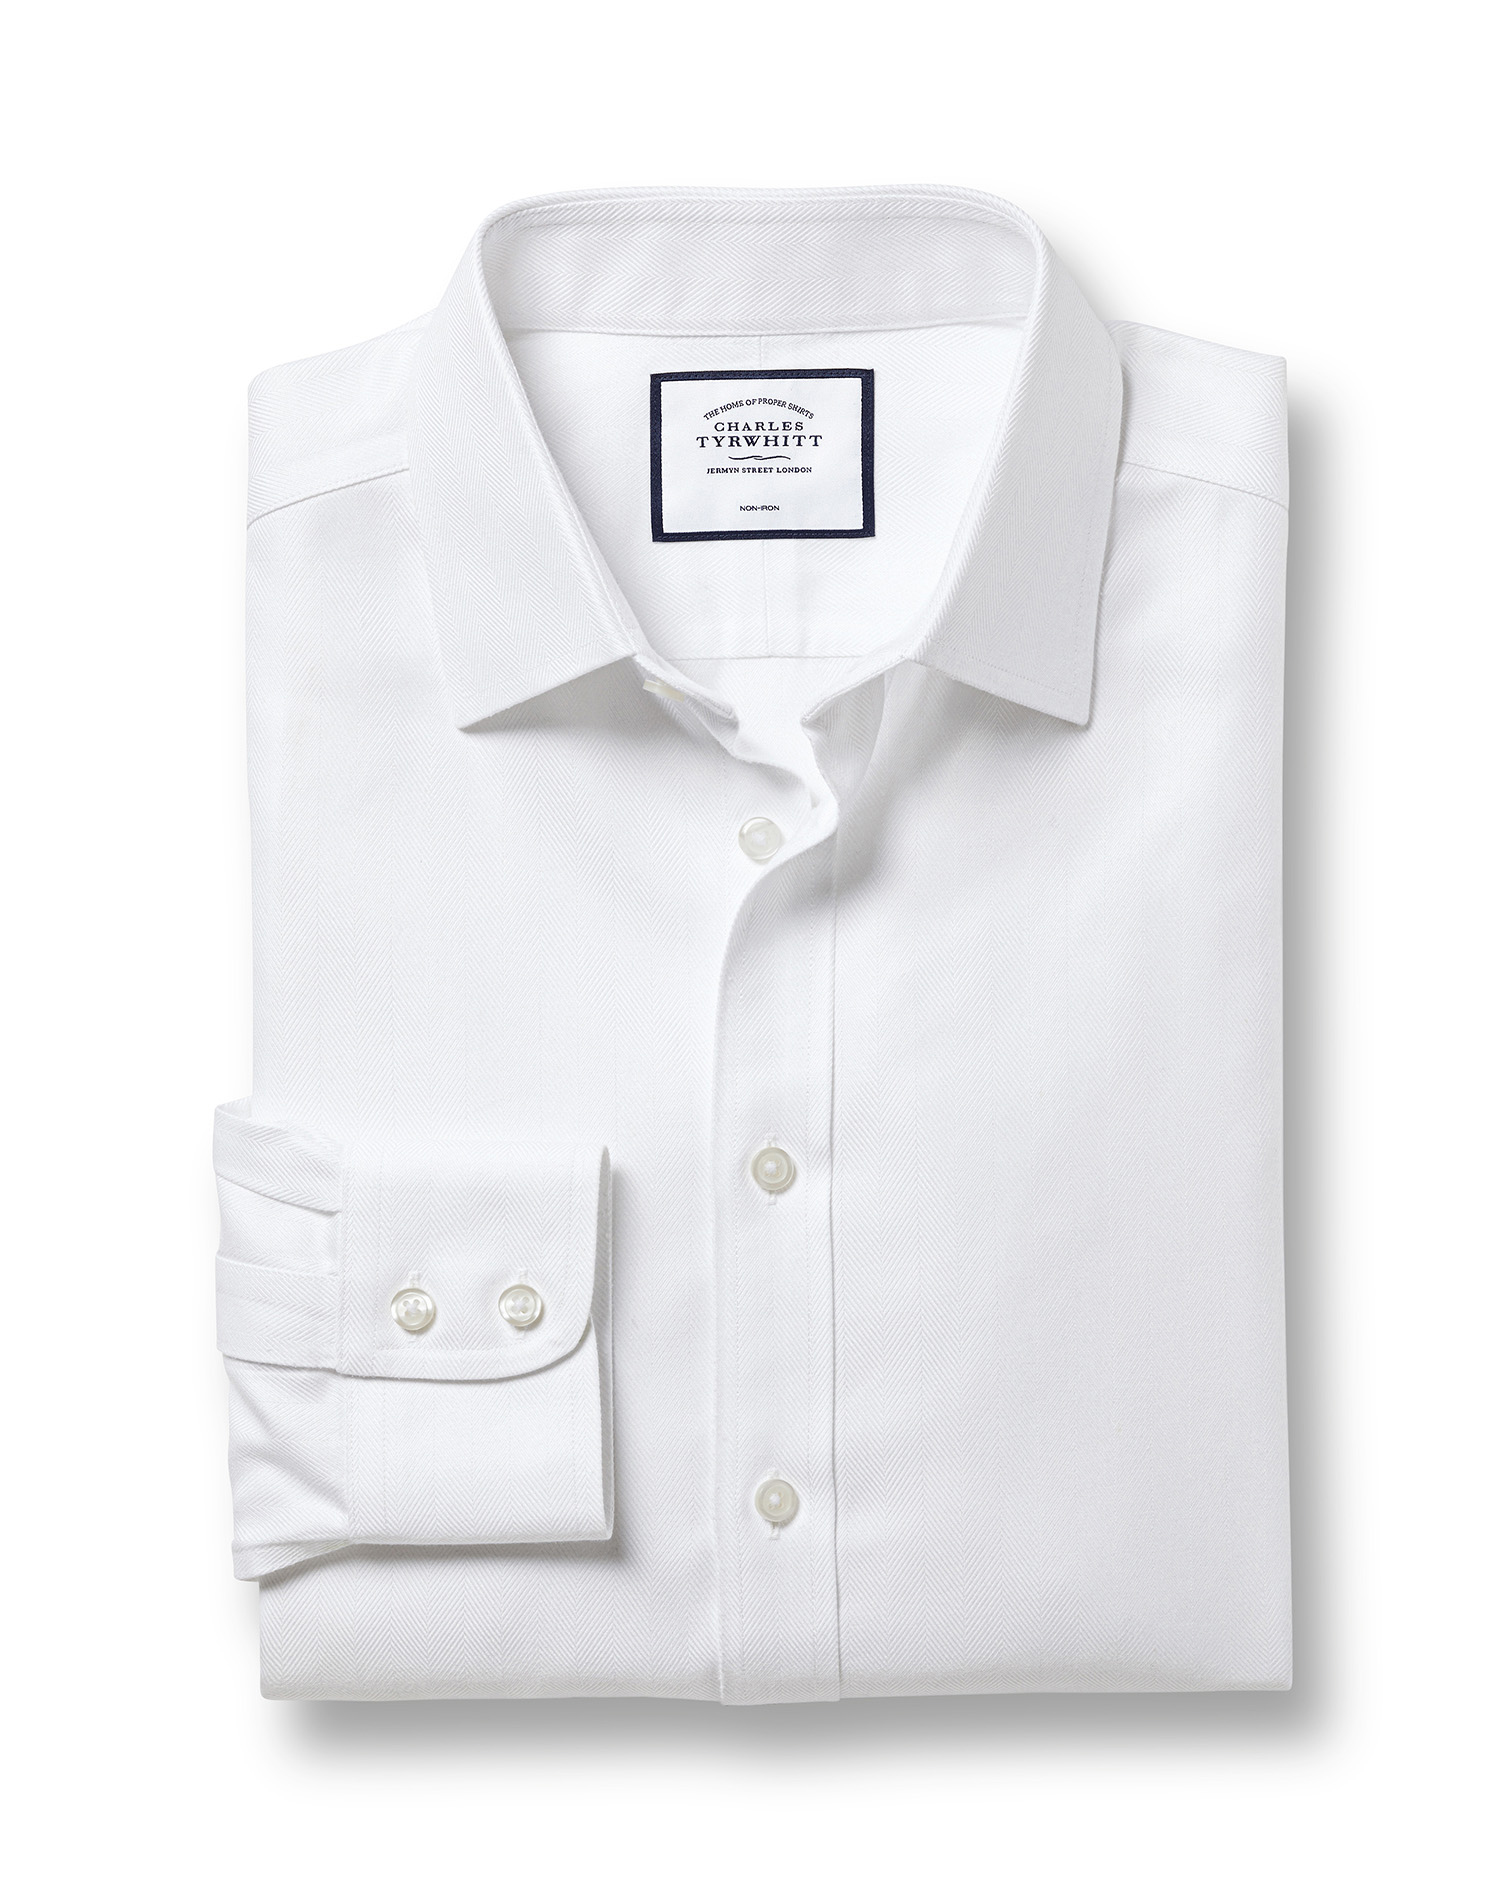 Classic Fit Non-Iron Herringbone White Cotton Formal Shirt Double Cuff Size 19/38 by Charles Tyrwhit